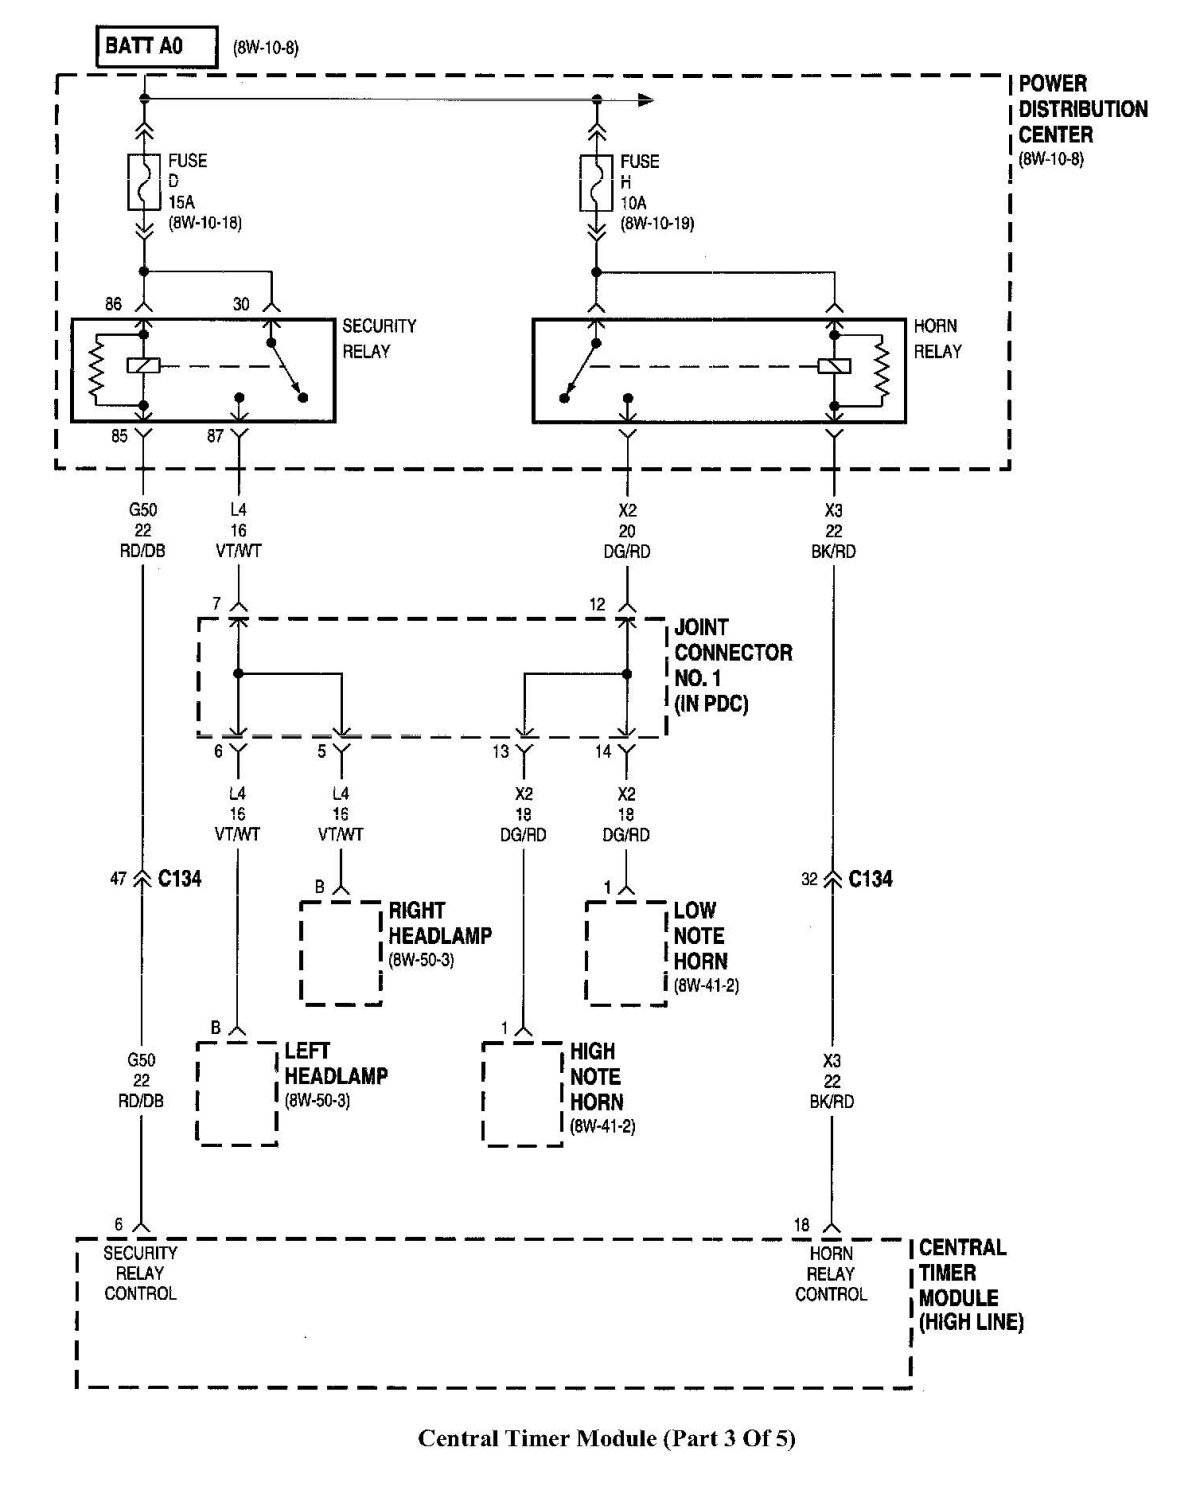 Wiring Diagram For 1998 Dodge Ram 3500 - Wiring Diagrams Hubs - 2004 Dodge Ram Trailer Wiring Diagram